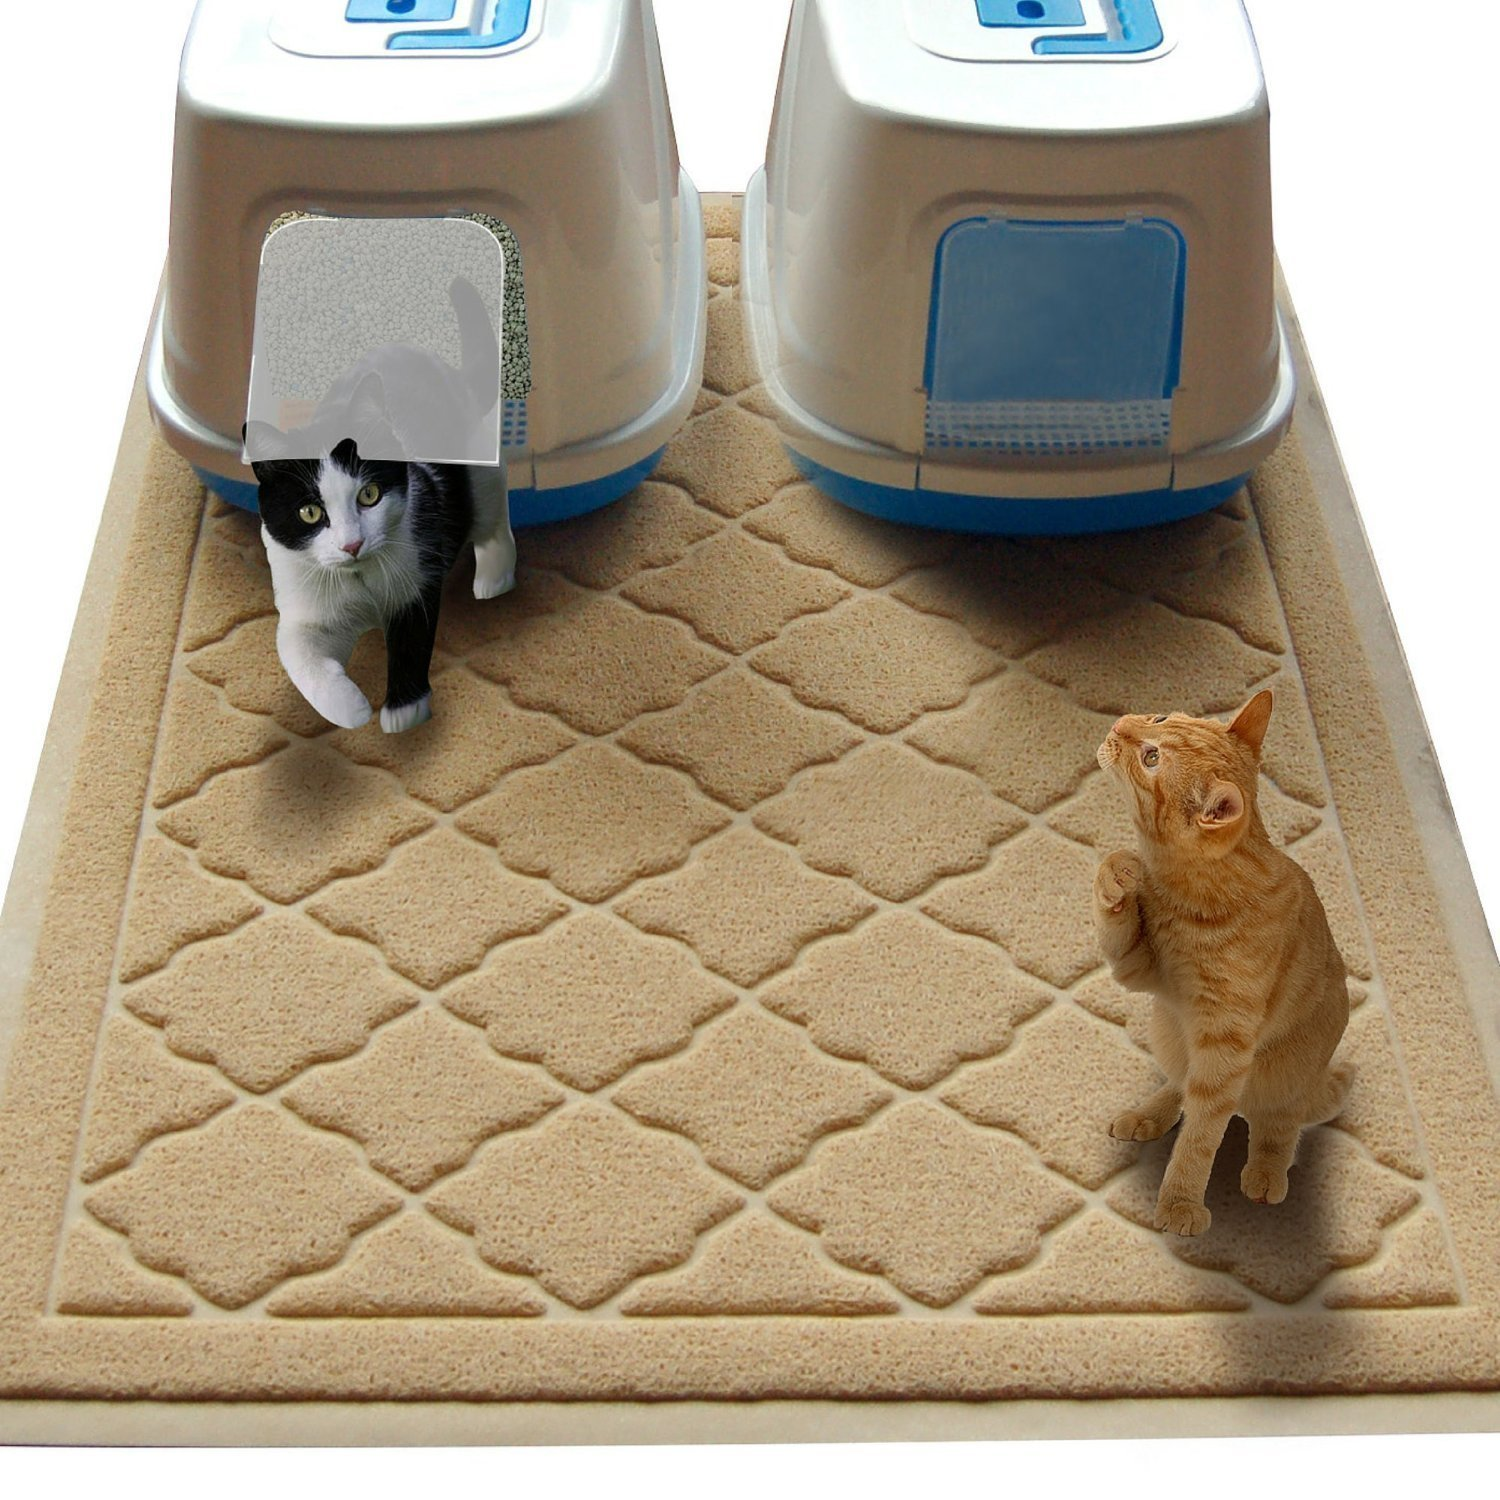 Non Toxic JUMBO Size Cat Litter Mat - (47 x 36 in) - Extra Large Scatter Control Kitty Litter Mats for Cats Tracking Litter Out of Their Box - Soft to Paws- (Patent Pending)